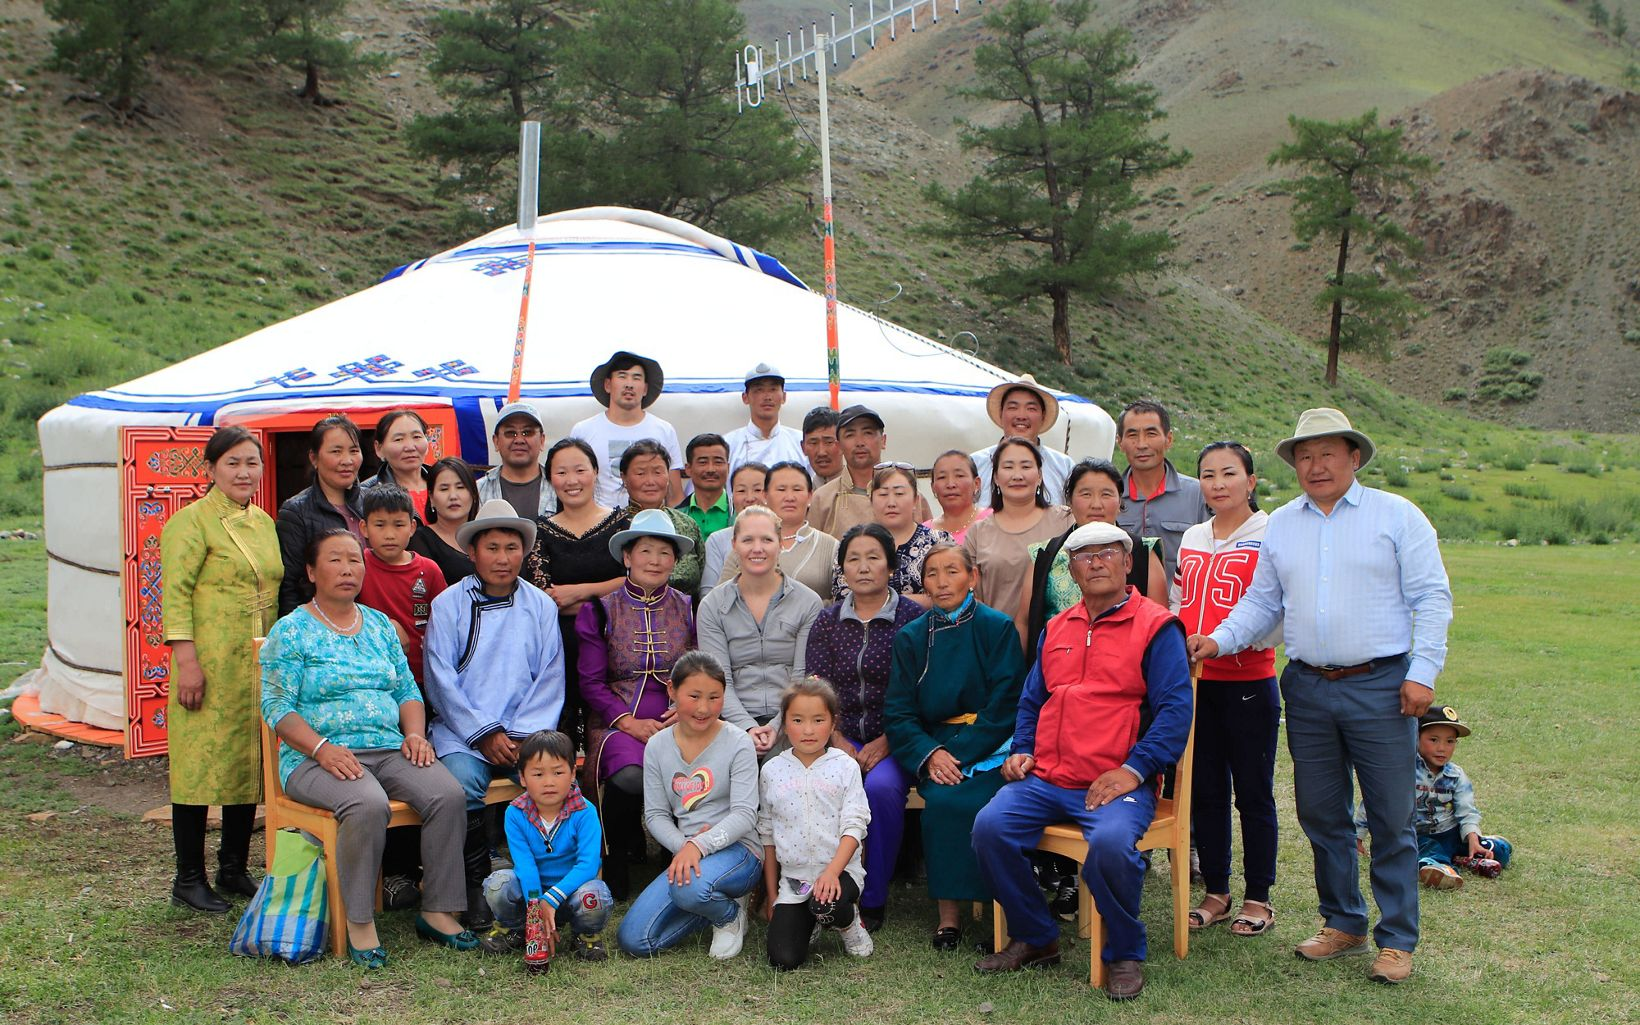 The local community poses in front a Mongolia ger tent at their eco-camp.